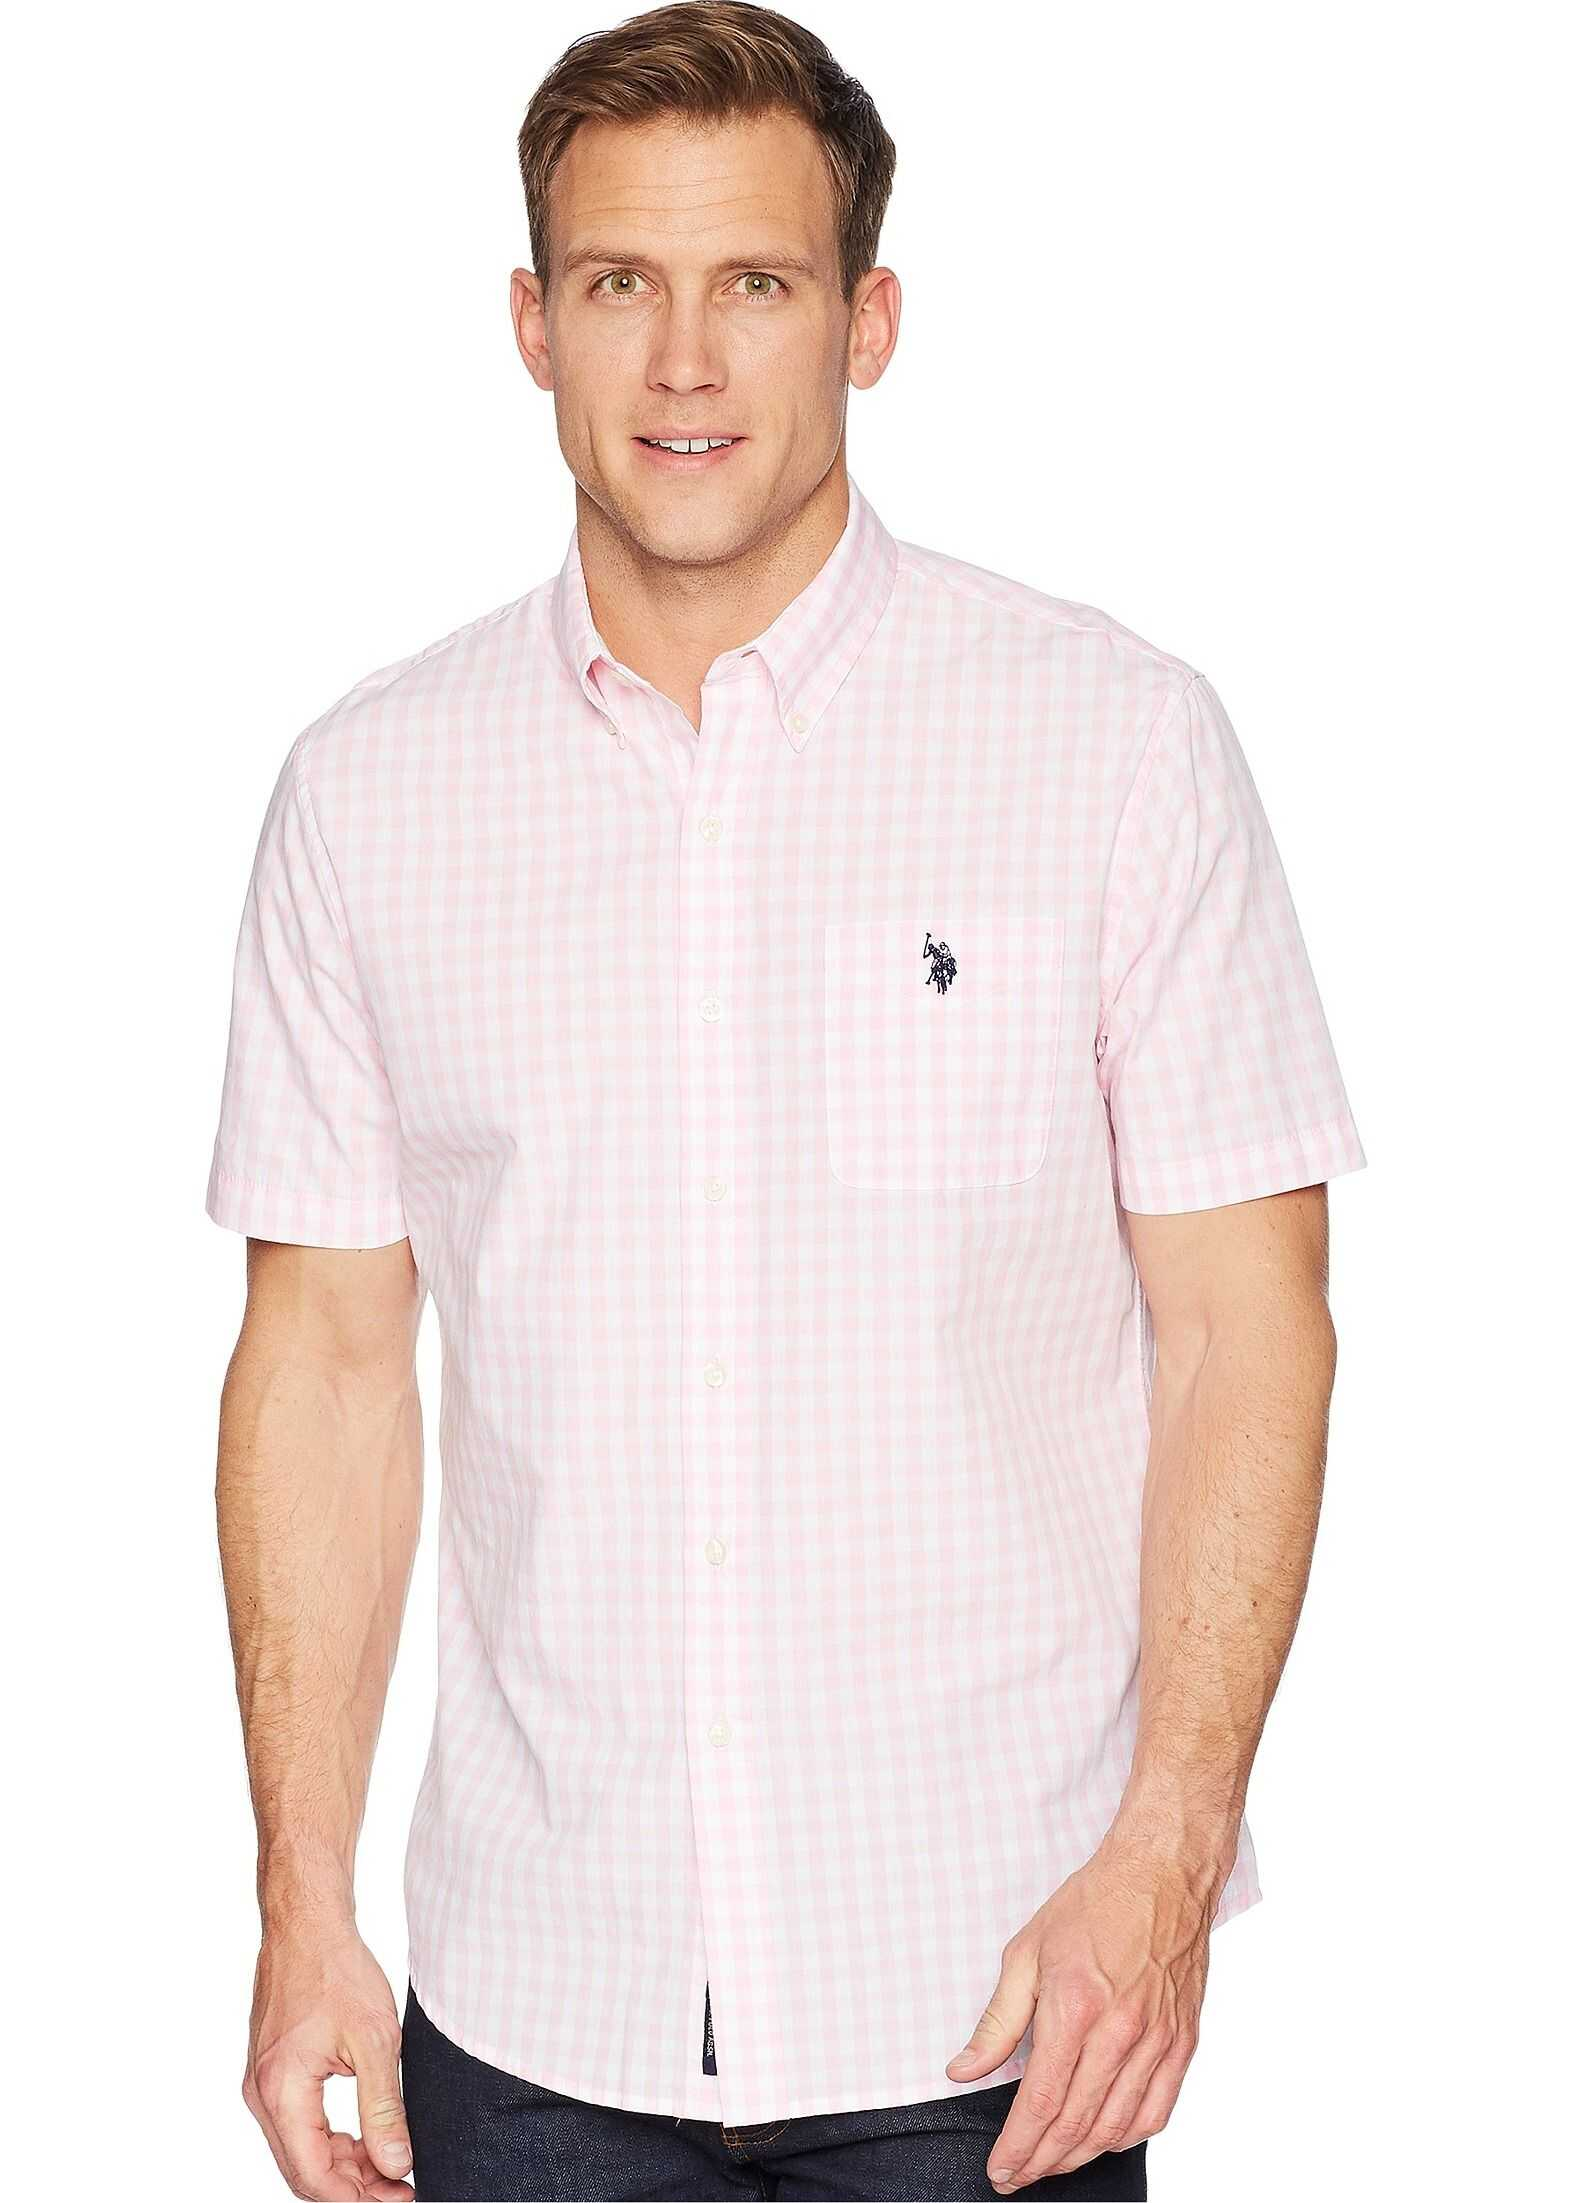 U.S. POLO ASSN. Gingham Woven Shirt Pink Gin